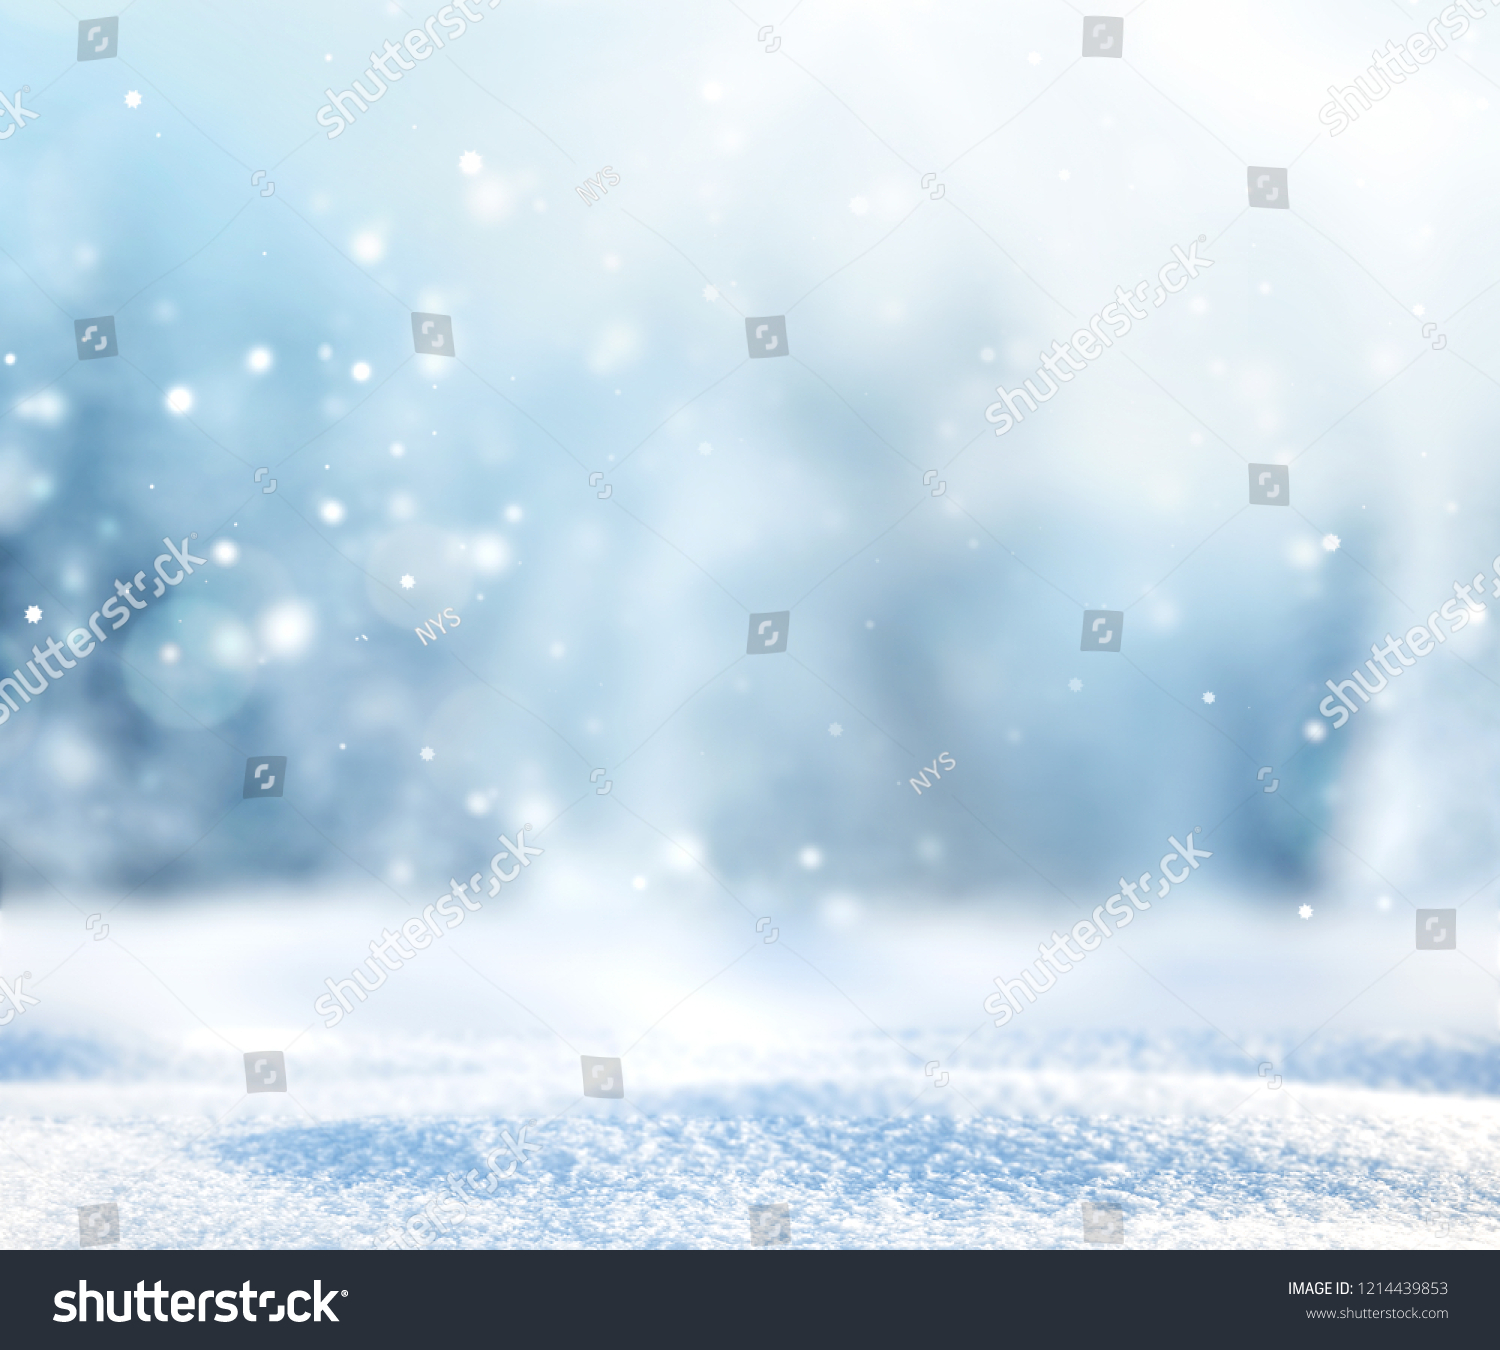 Snowy winter landscape,fir pine forest blurred background.Christmas backdrop. #1214439853